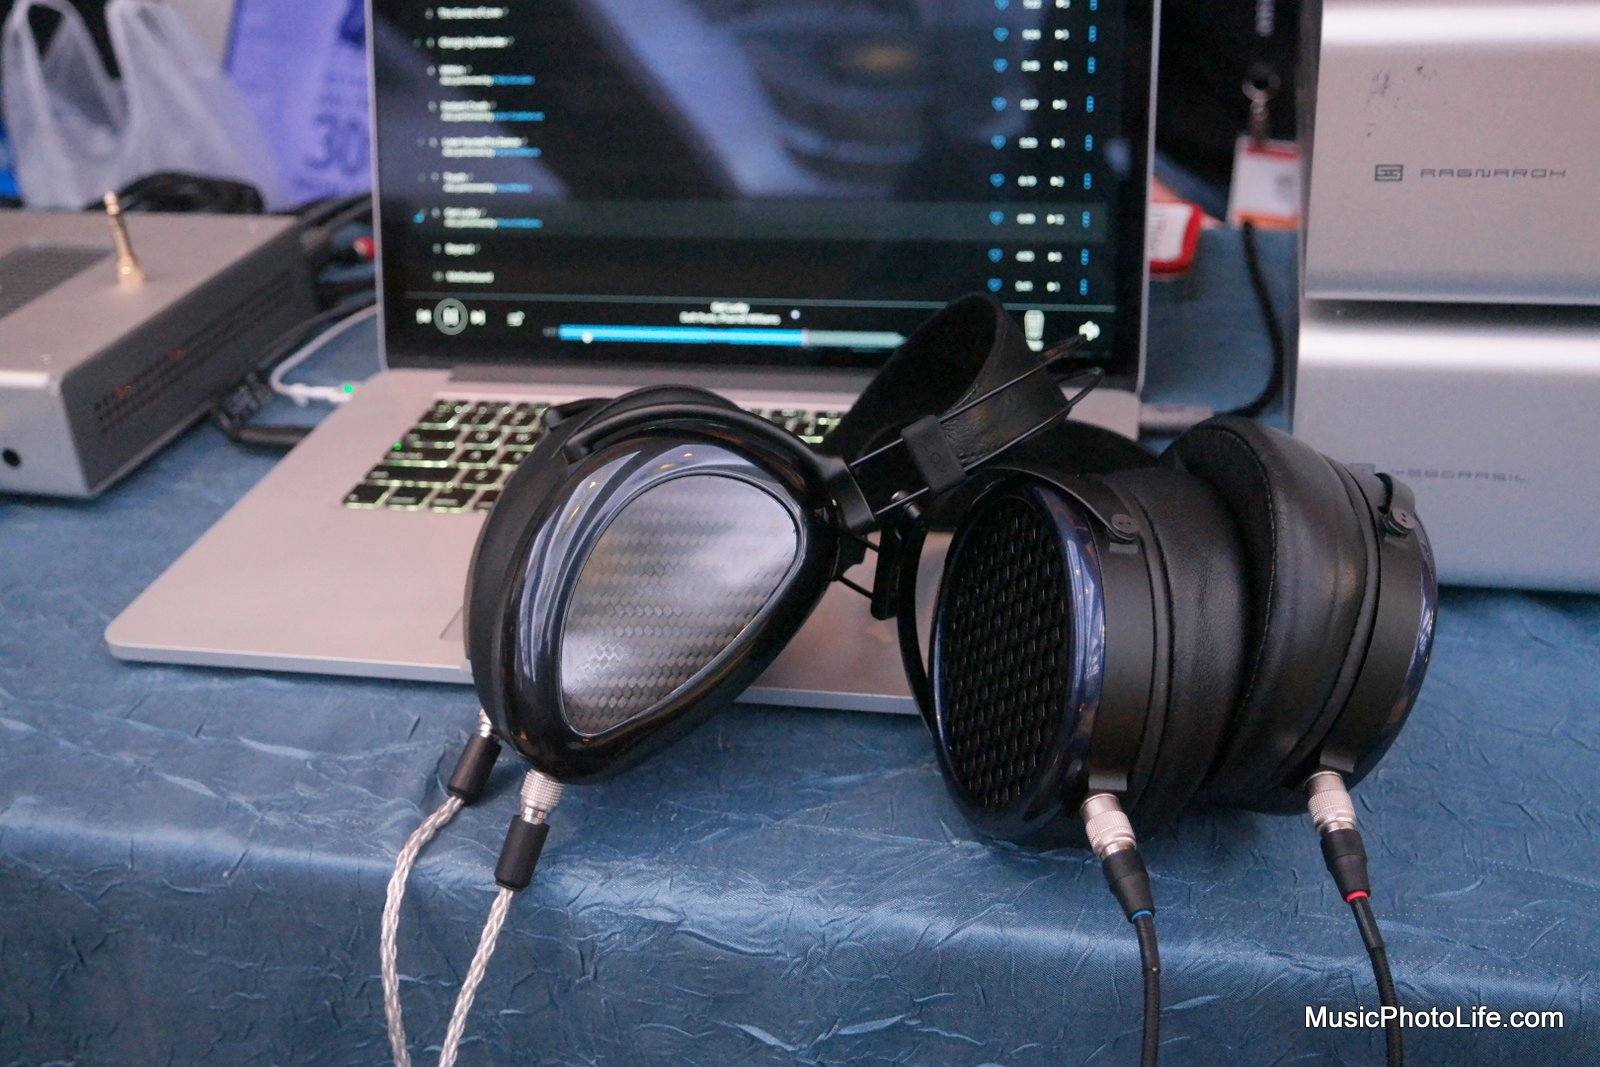 MrSpeakers Ether Flow and Aeon planar magnetic headphones at CanJam Singapore 2017